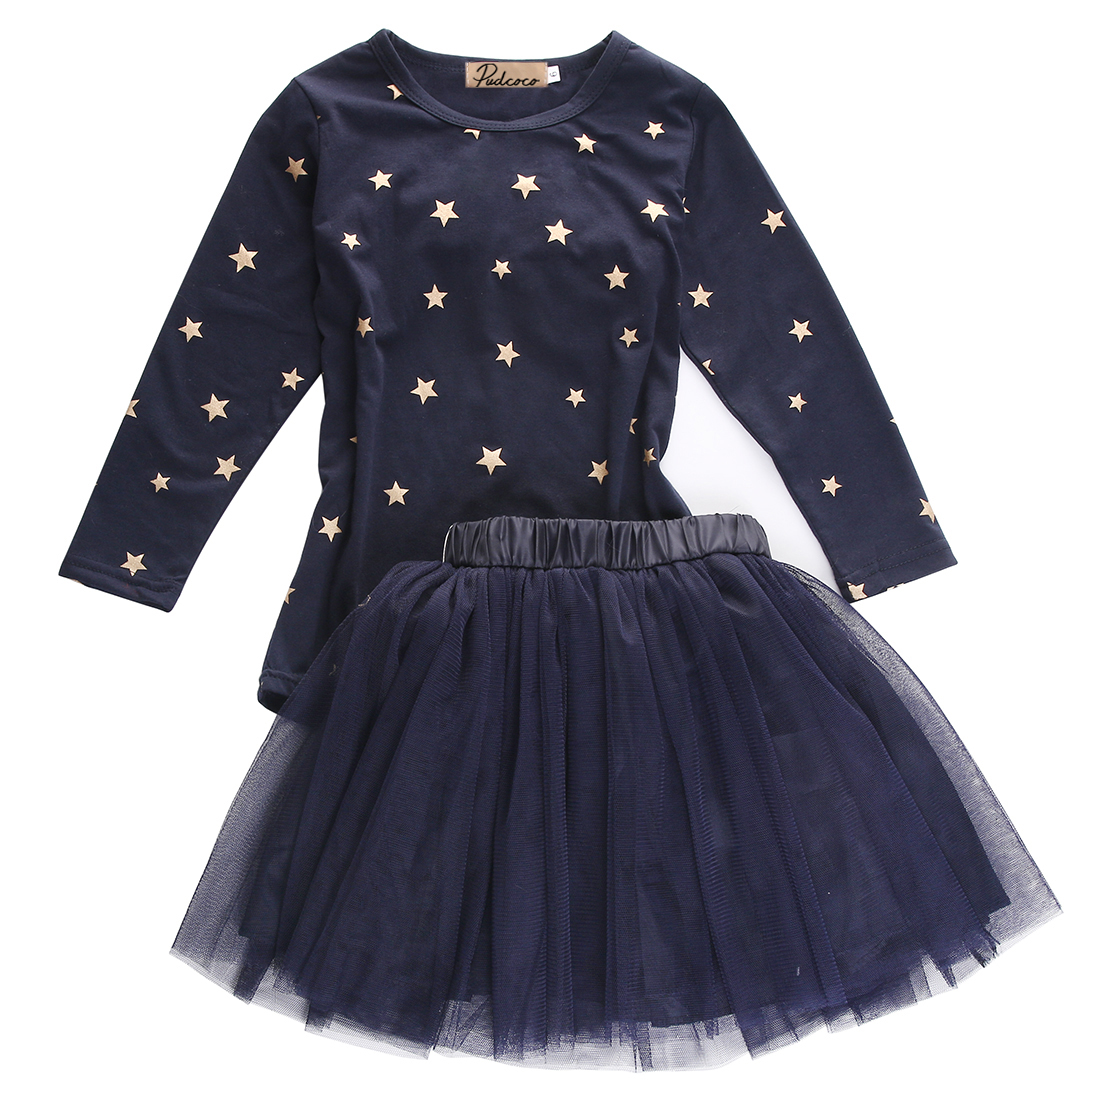 Children Baby Girl Clothes Set Party Tops Long Sleeve T-shirt Star Tulle Skirts Outfits Set Tutu Skirt Children Clothing Casual two pieces kid girl clothing set flower t shirt tutu skirt children summer set for 2 12 girls outfits party prom